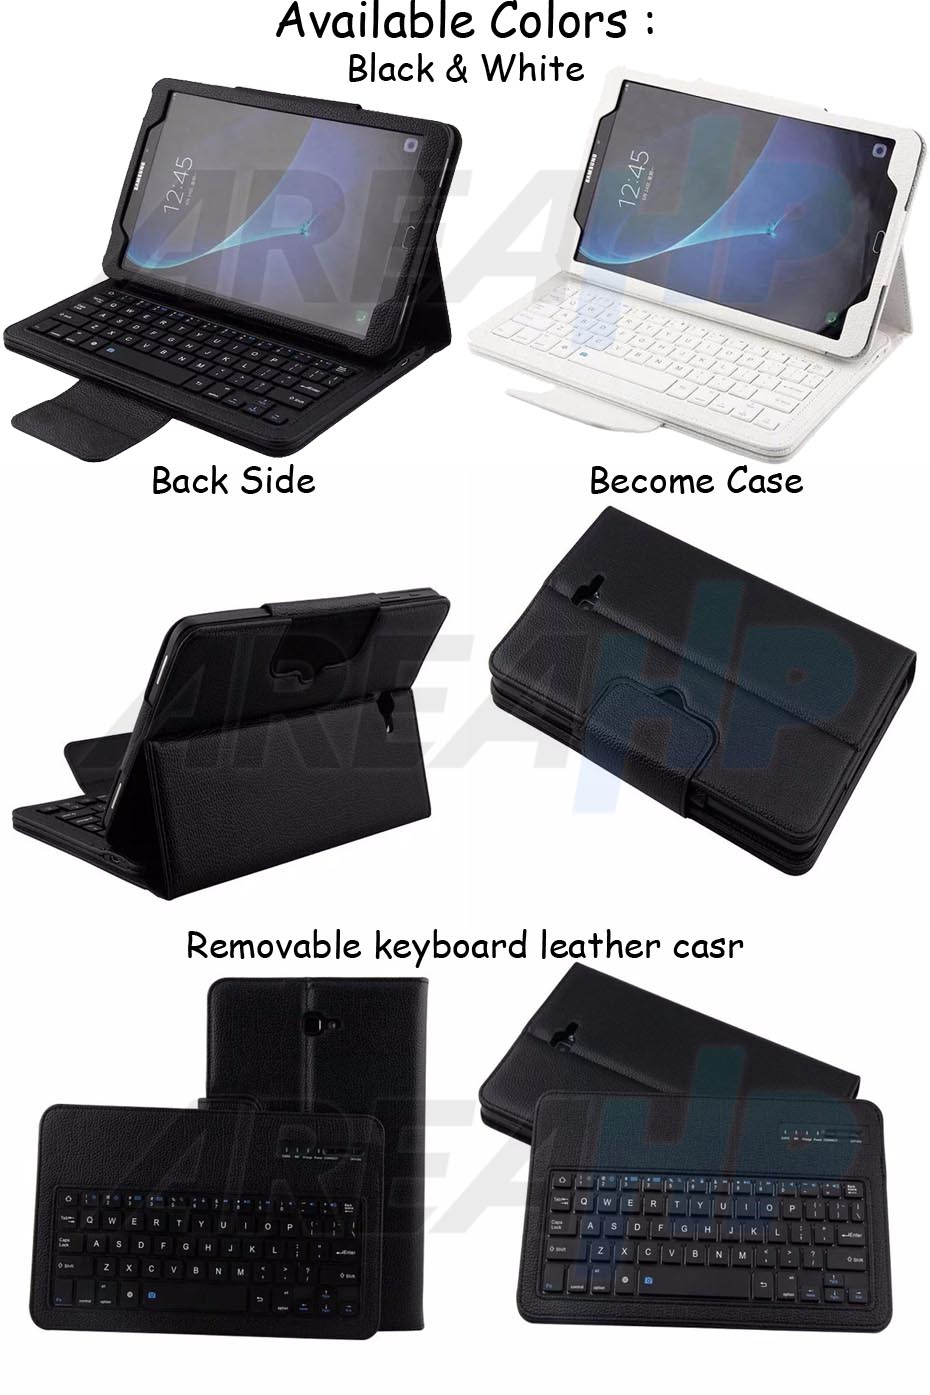 Removable Keyboard Leather Case for Samsung Galaxy Tab A 10